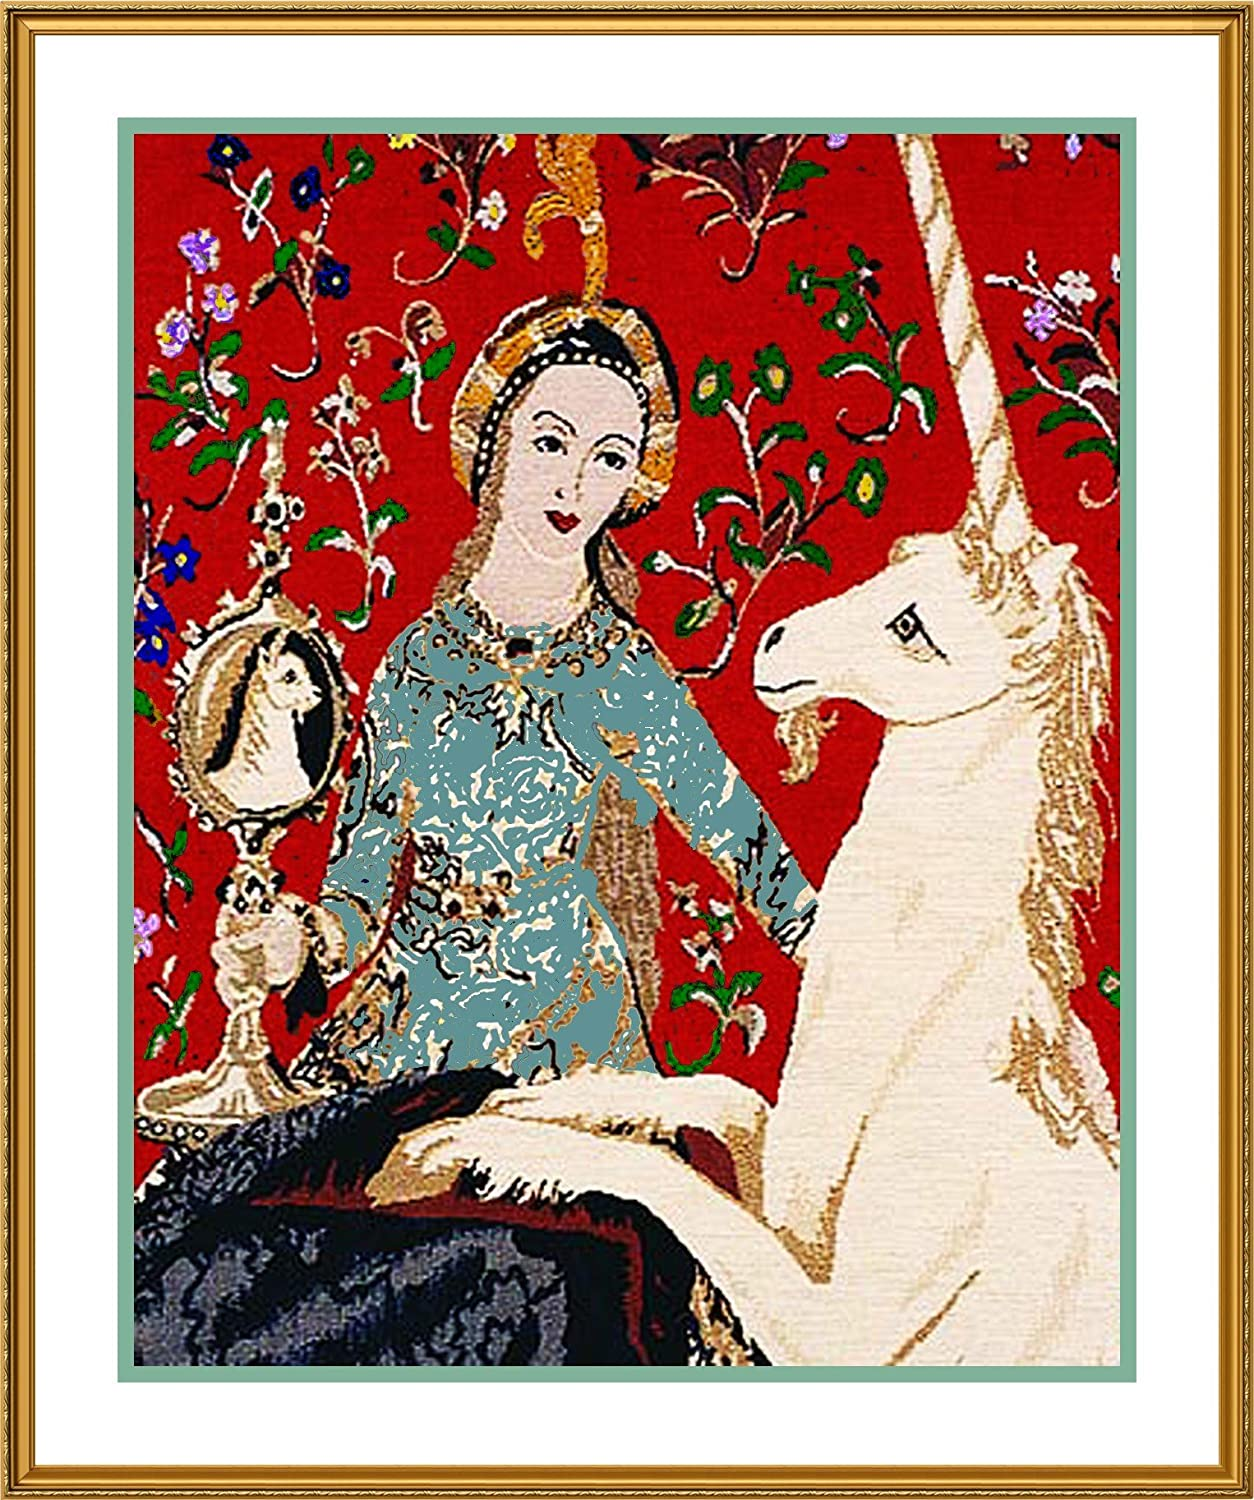 Medieval The Lady /& the Unicorn Sight Counted Cross Stitch Chart Pattern